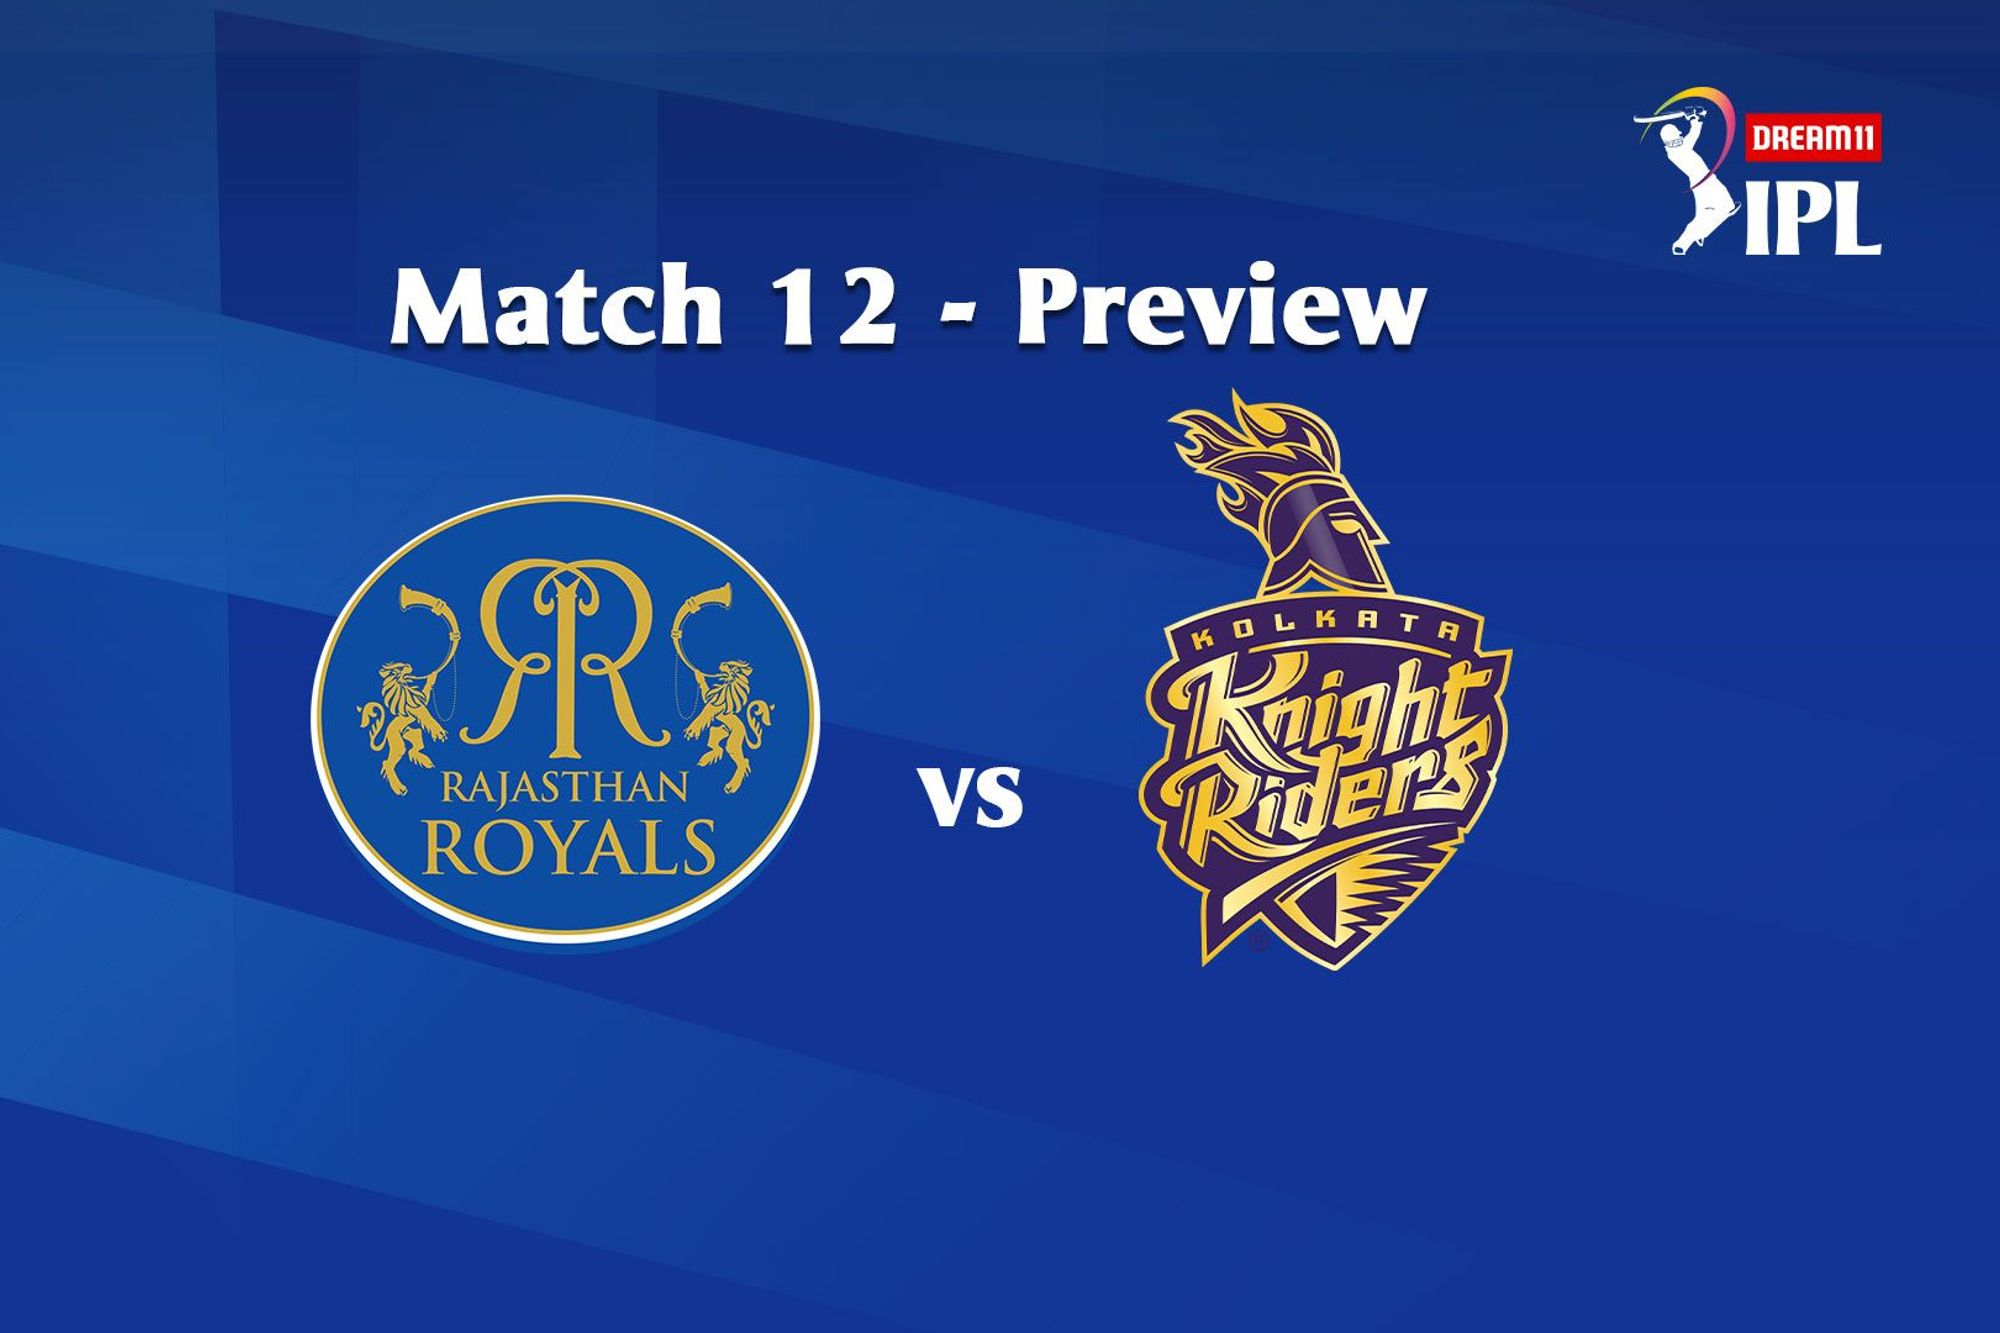 IPL 2020: RR vs KKR Match Overview